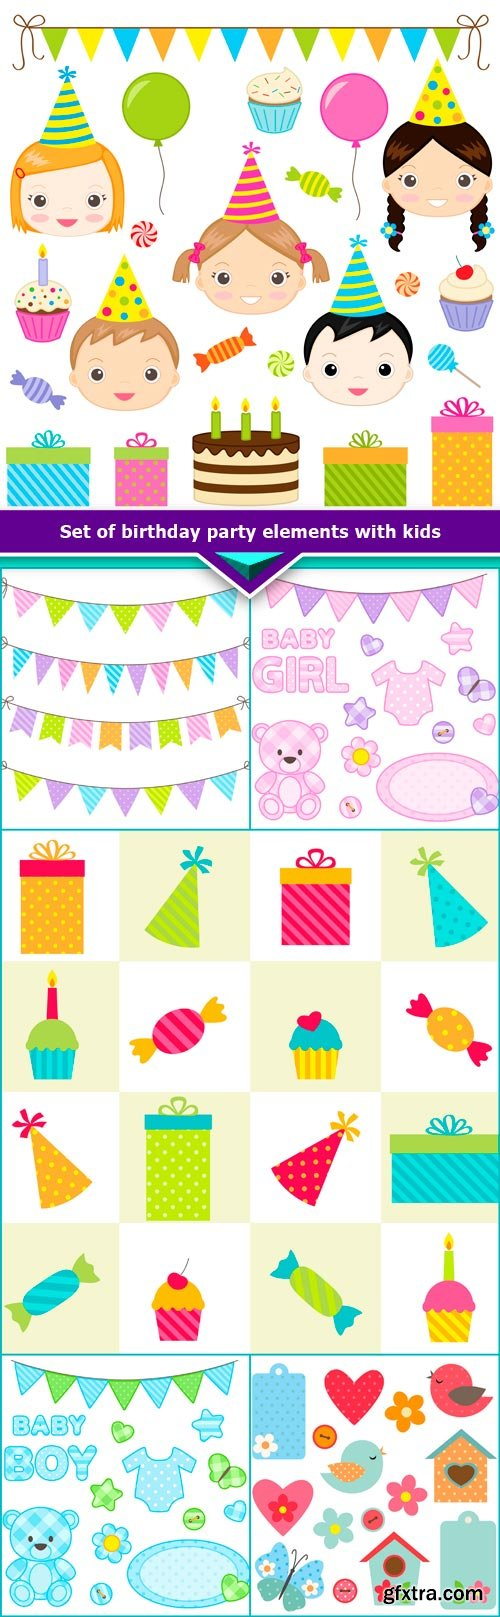 Set of birthday party elements with kids 6x JPEG